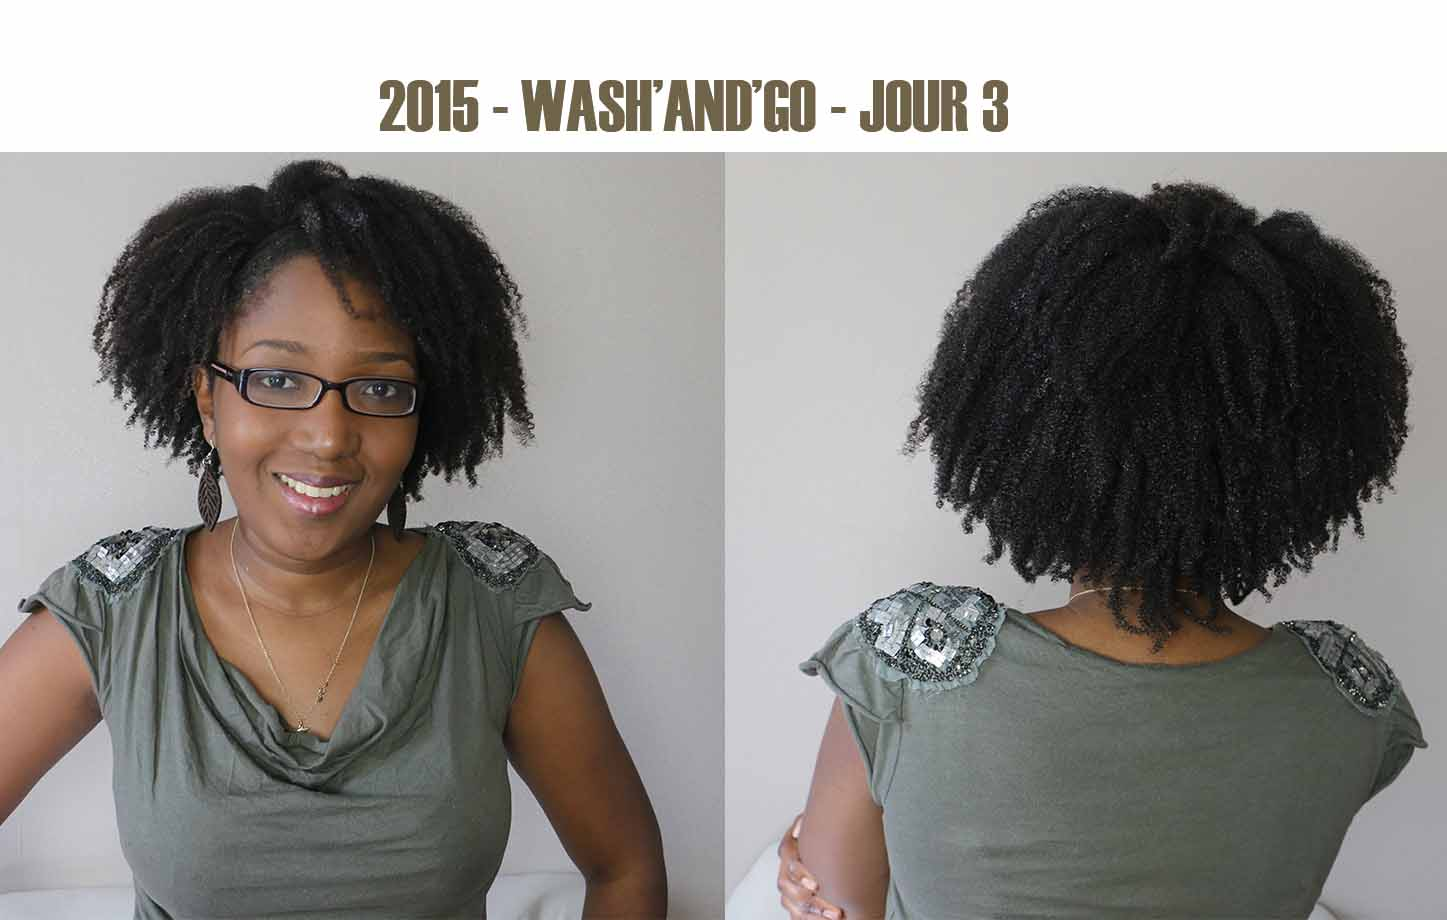 wash and go resultat final JOUR 3